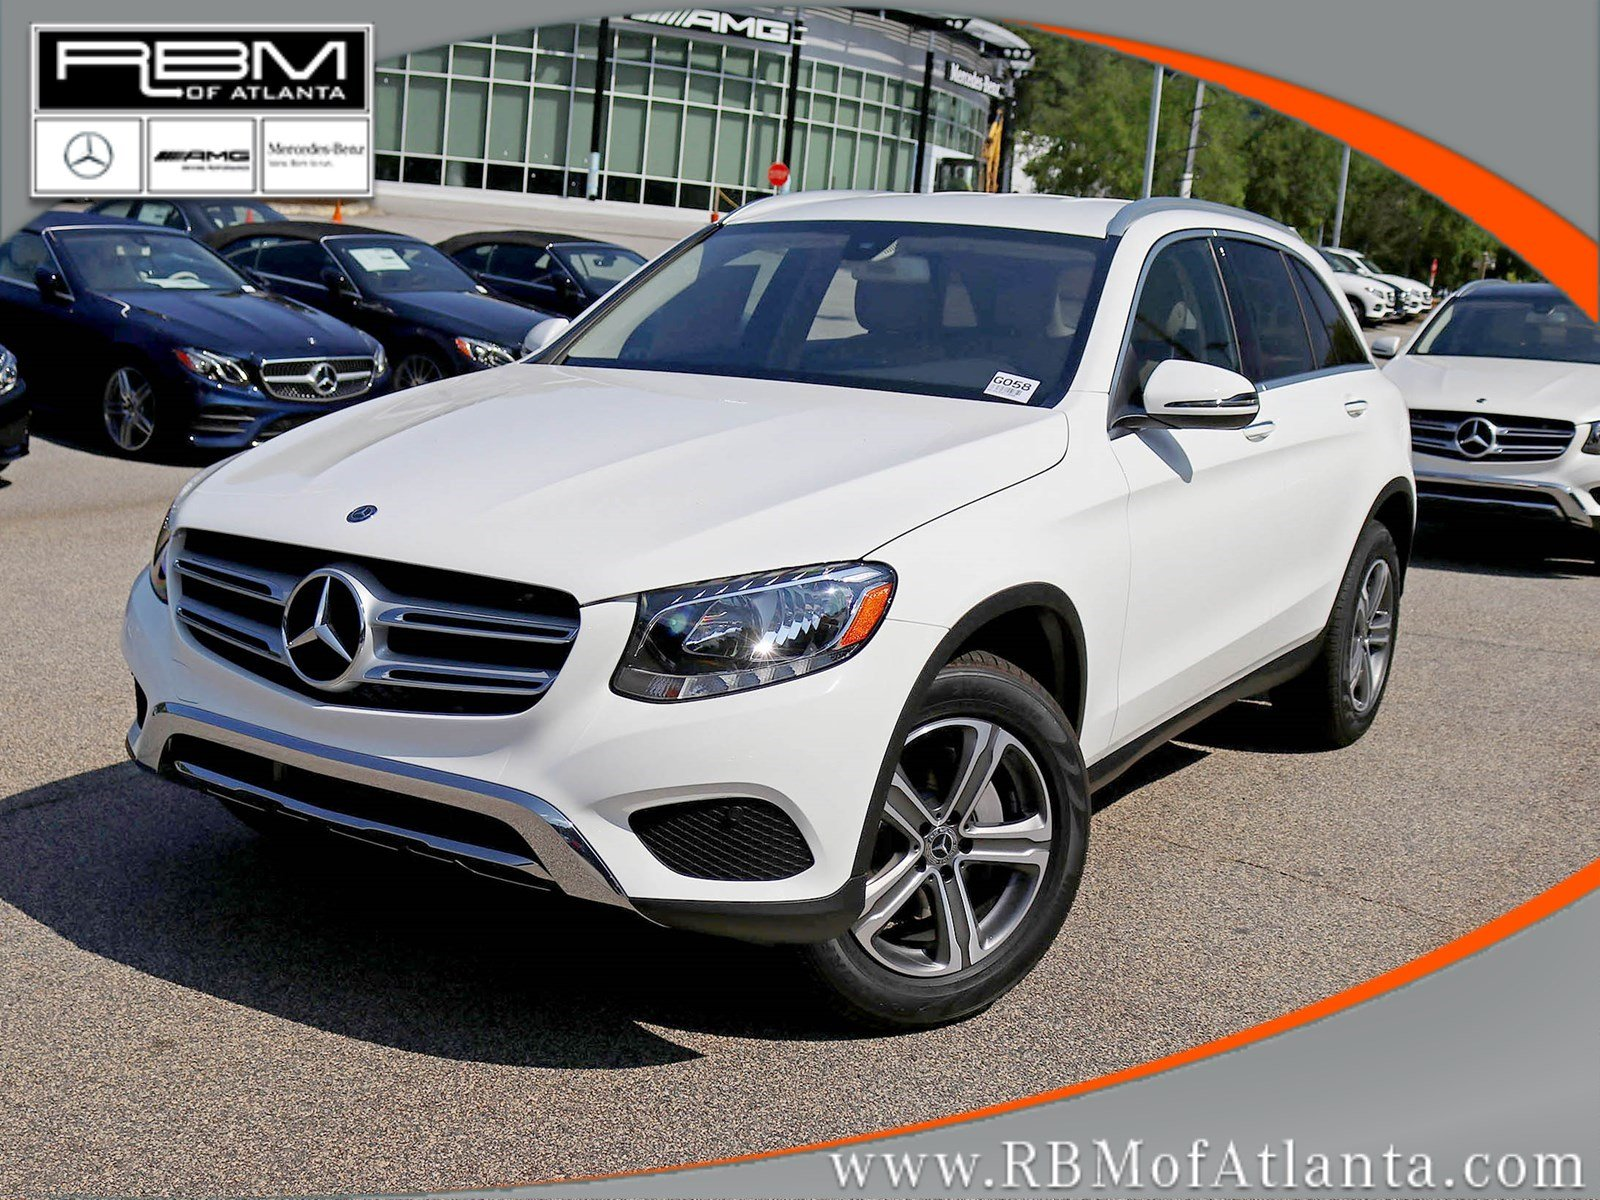 New 2019 Mercedes Benz GLC GLC 300 SUV in Atlanta G058